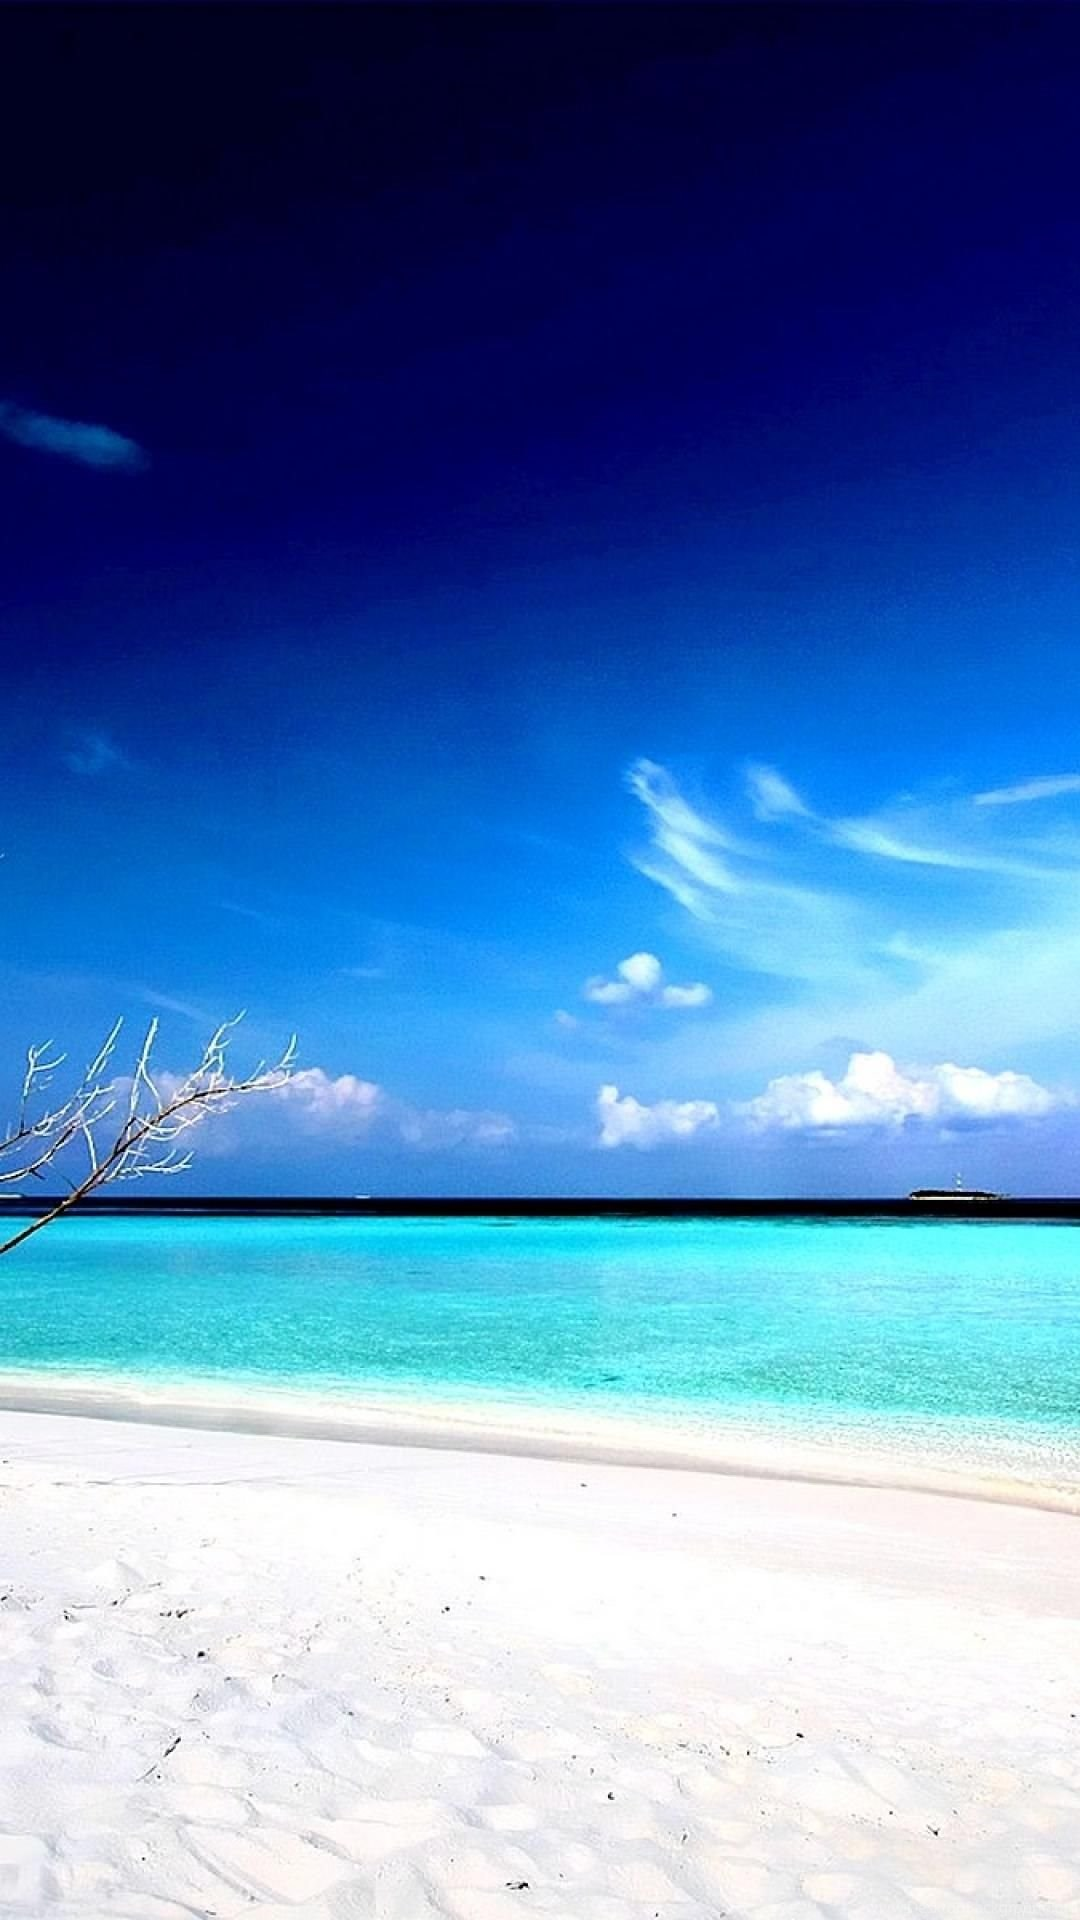 Hd Beach Wallpapers 1080p Nature Beach Iphone 6 Plus 1080x1920